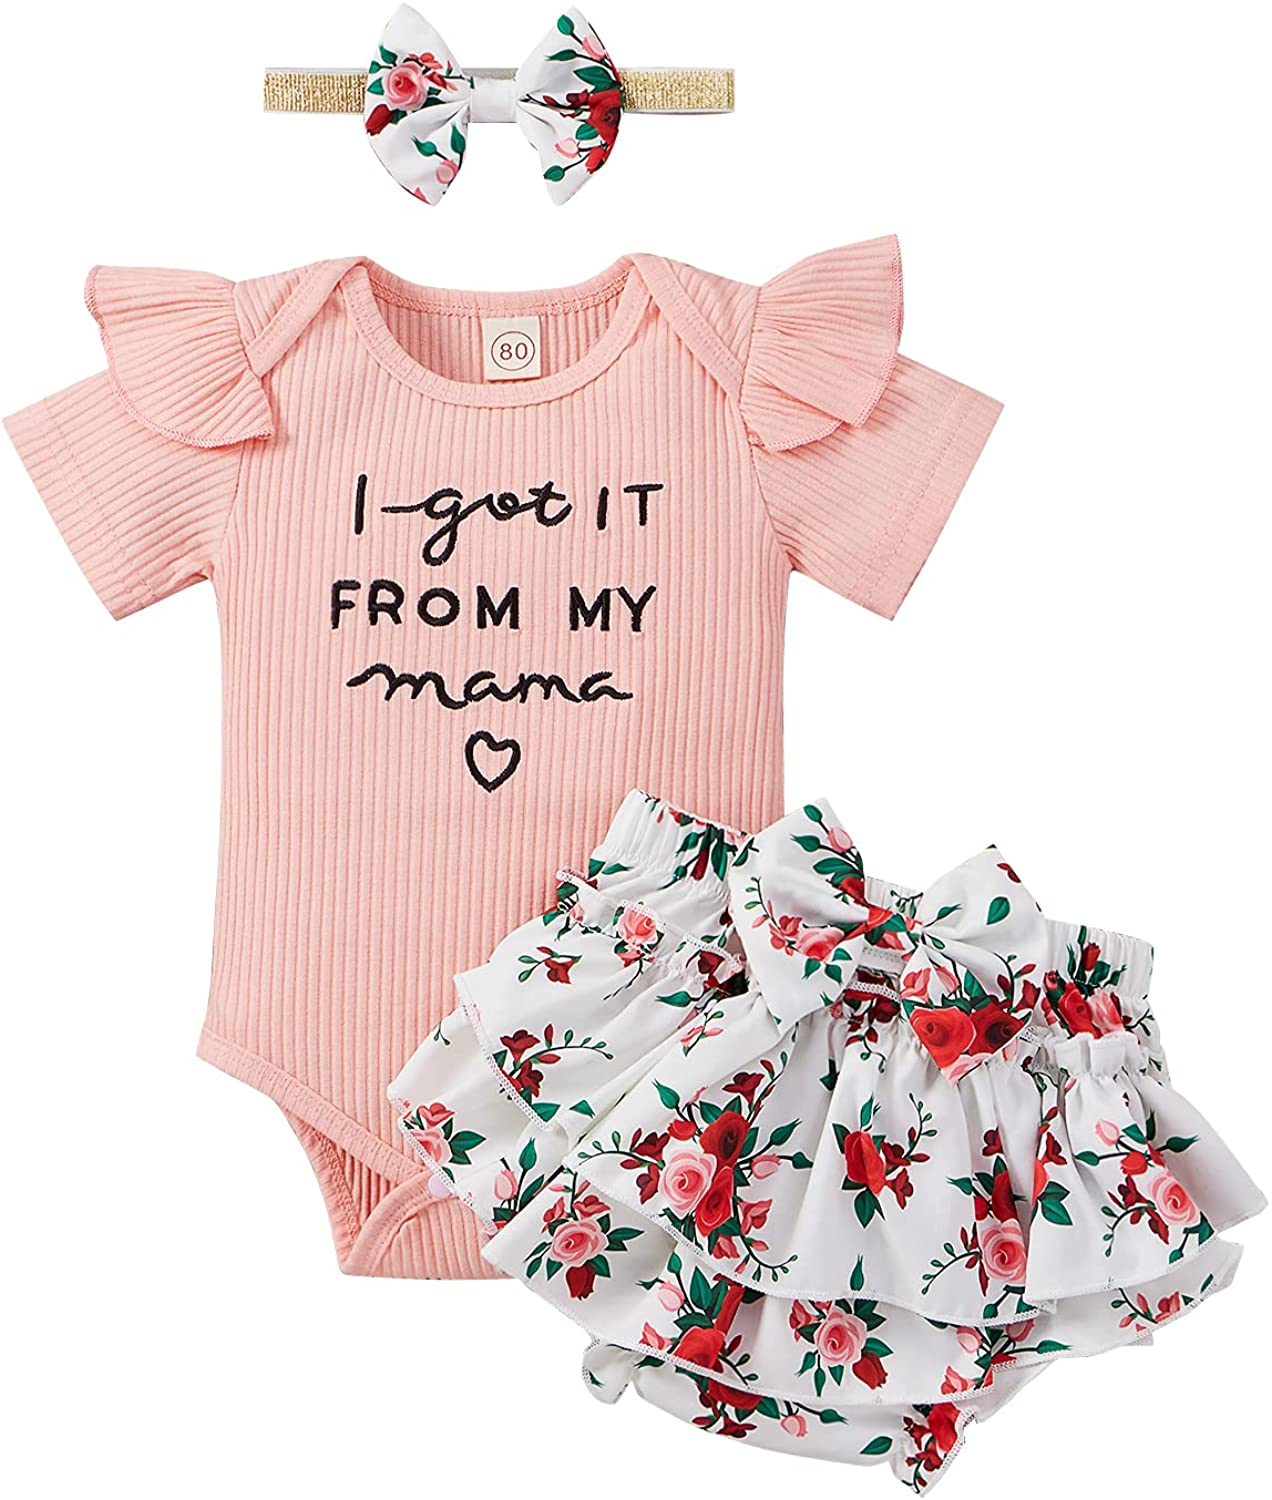 Newborn Infant Baby Girls Clothes Romper Set Cute Funny letters Summer onesie and Floral Shorts with Headband